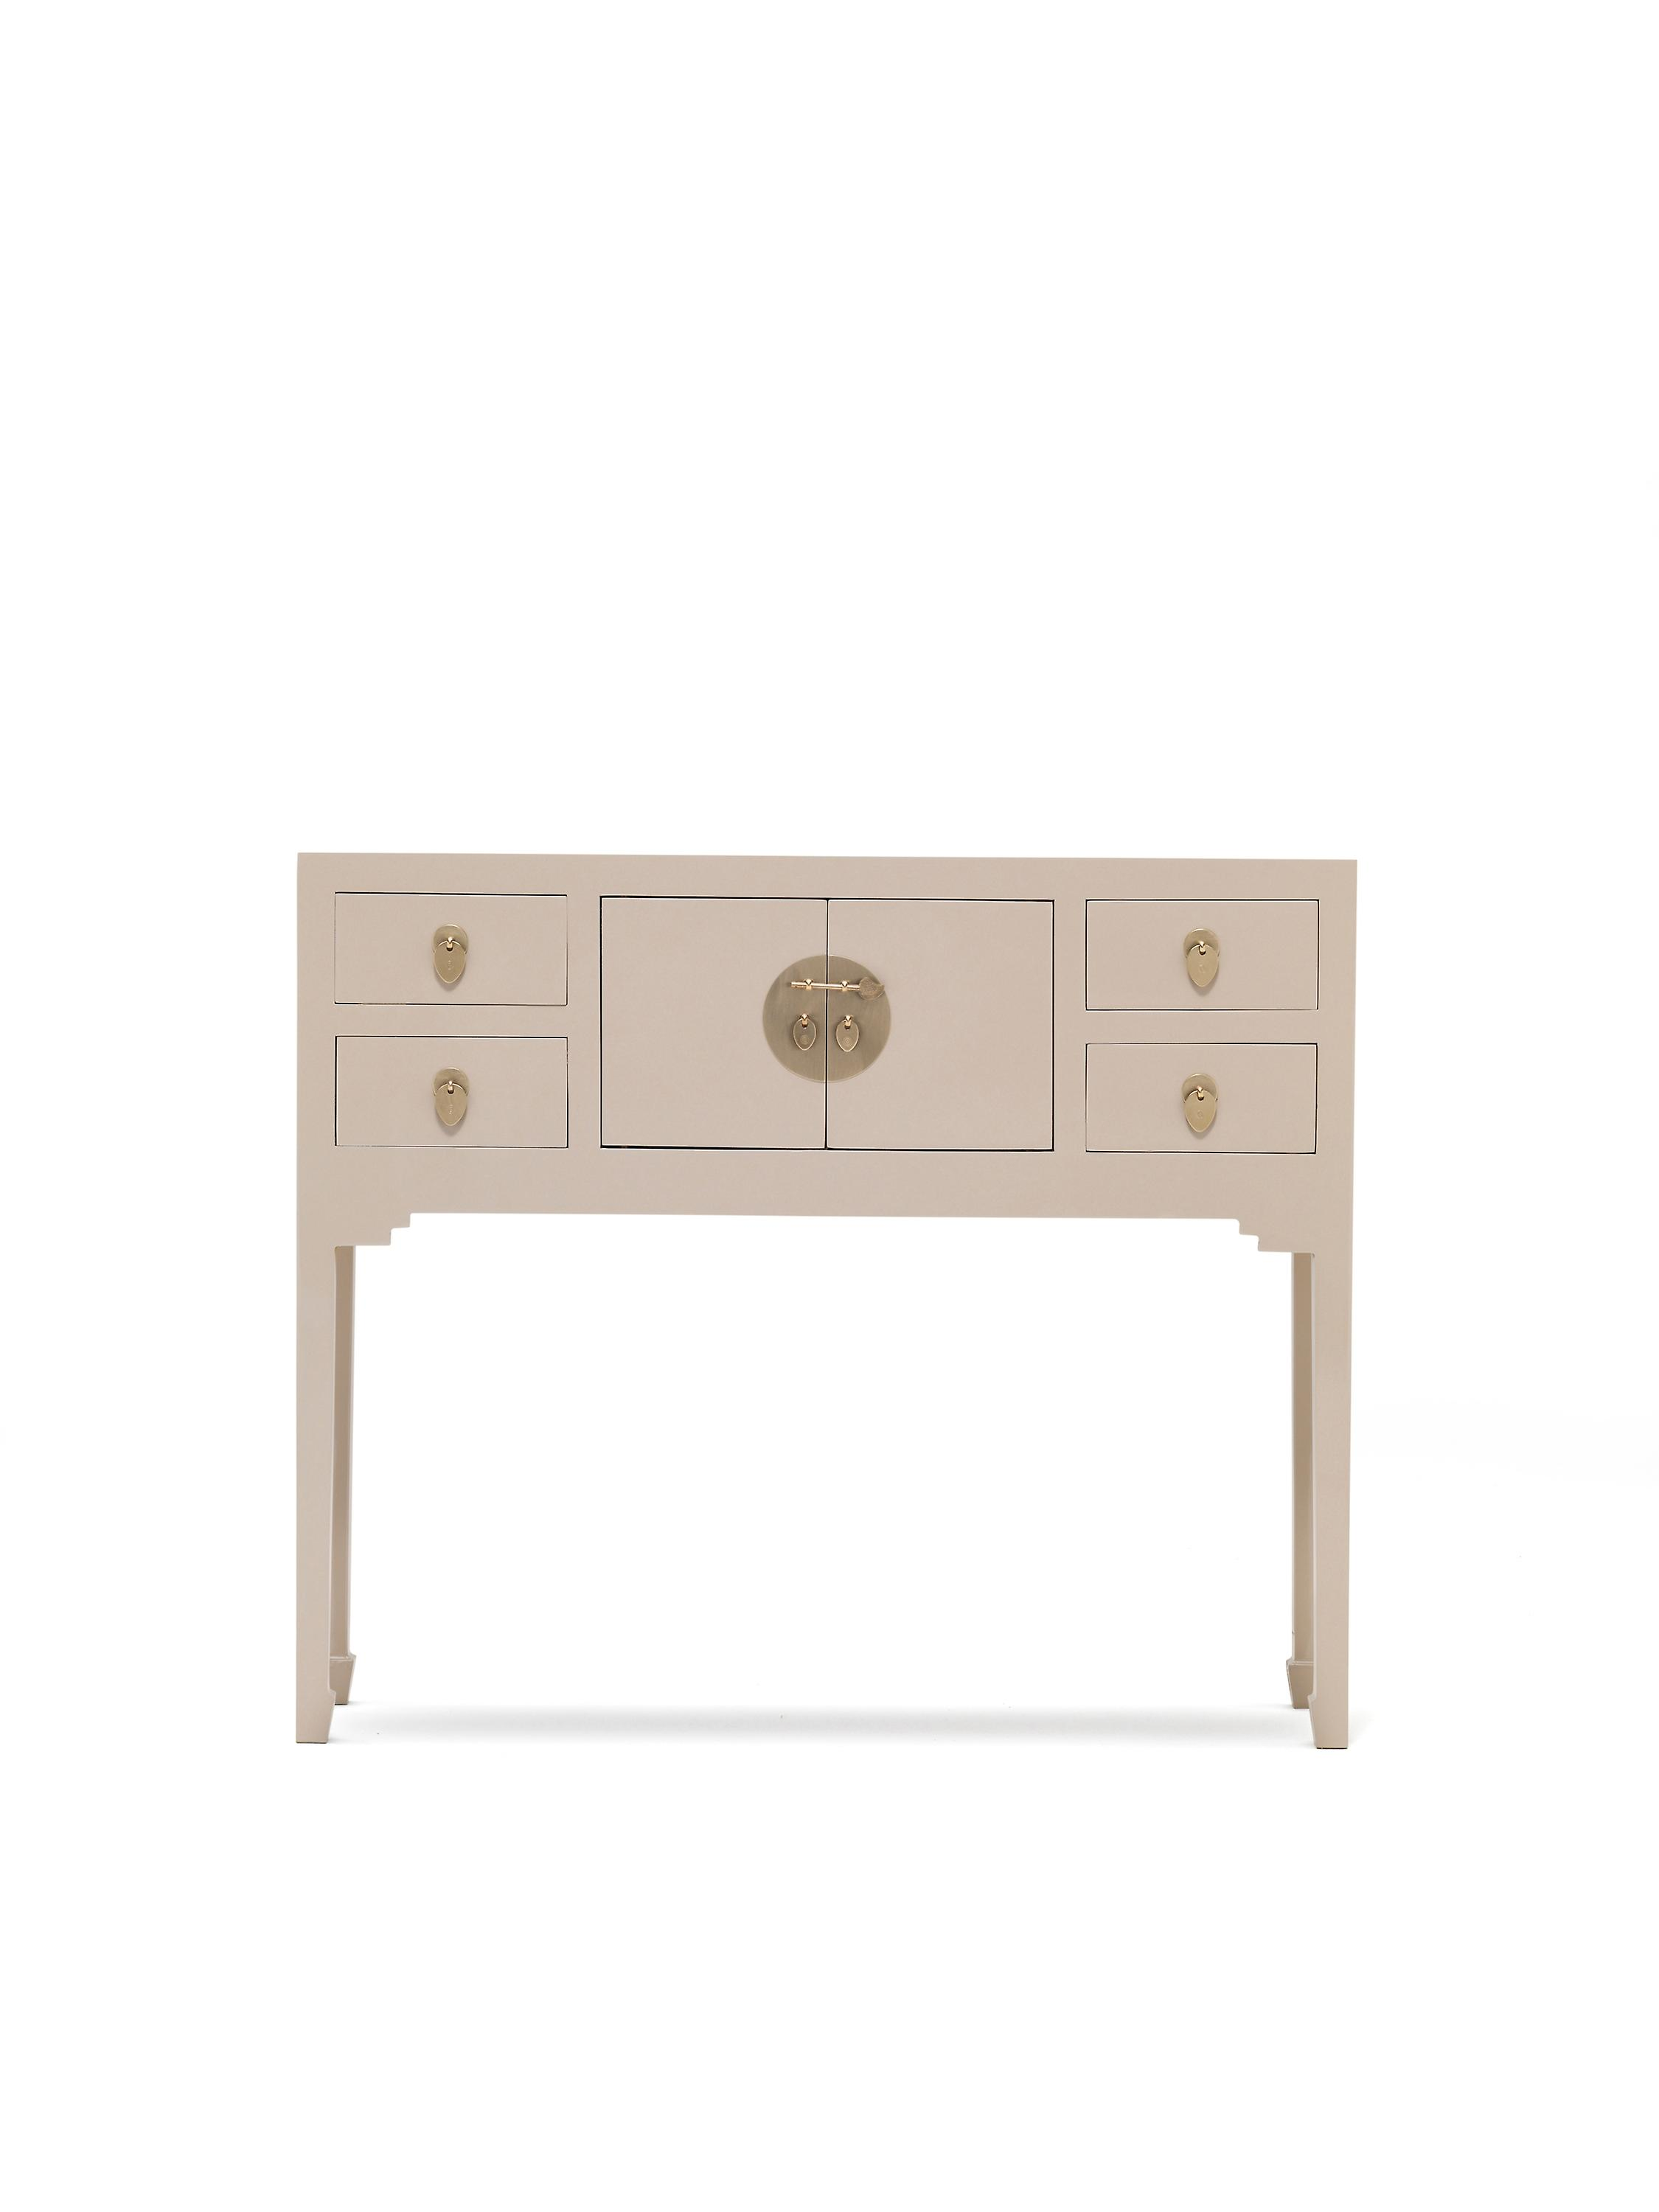 Les neuf écoles Qing Oyster gris petite Console Table - Baumhaus